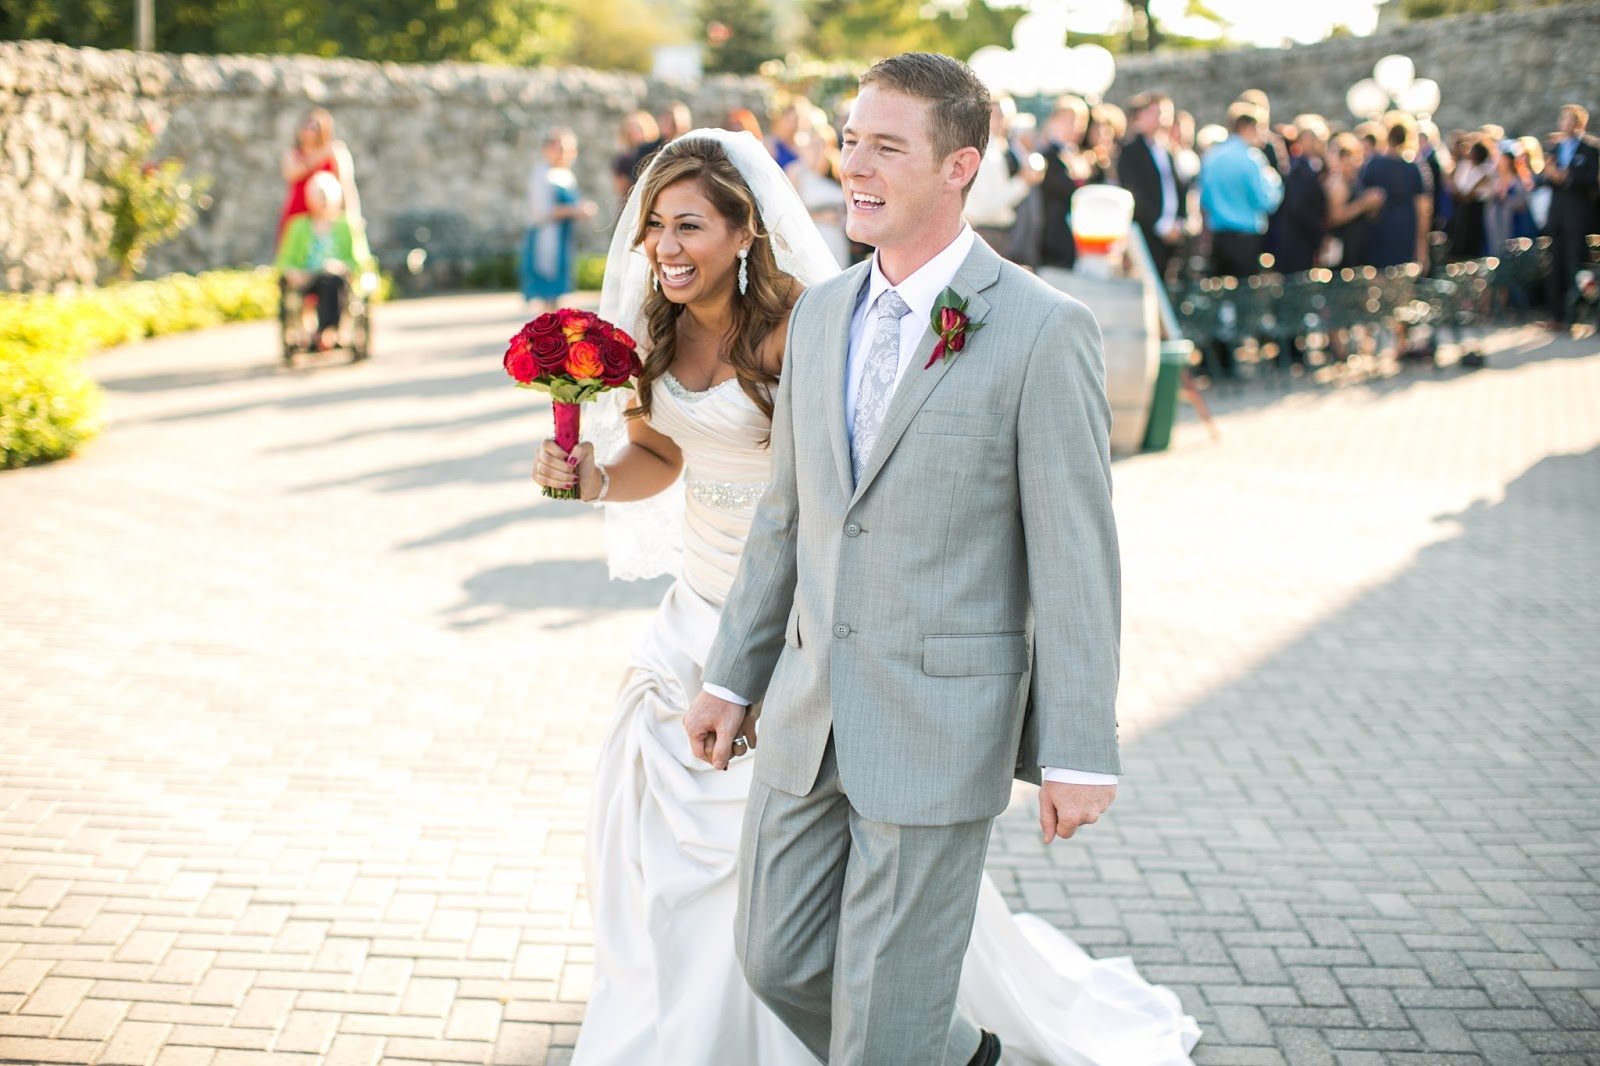 Niagara Falls wedding ceremony // the-lifestyle-project.com